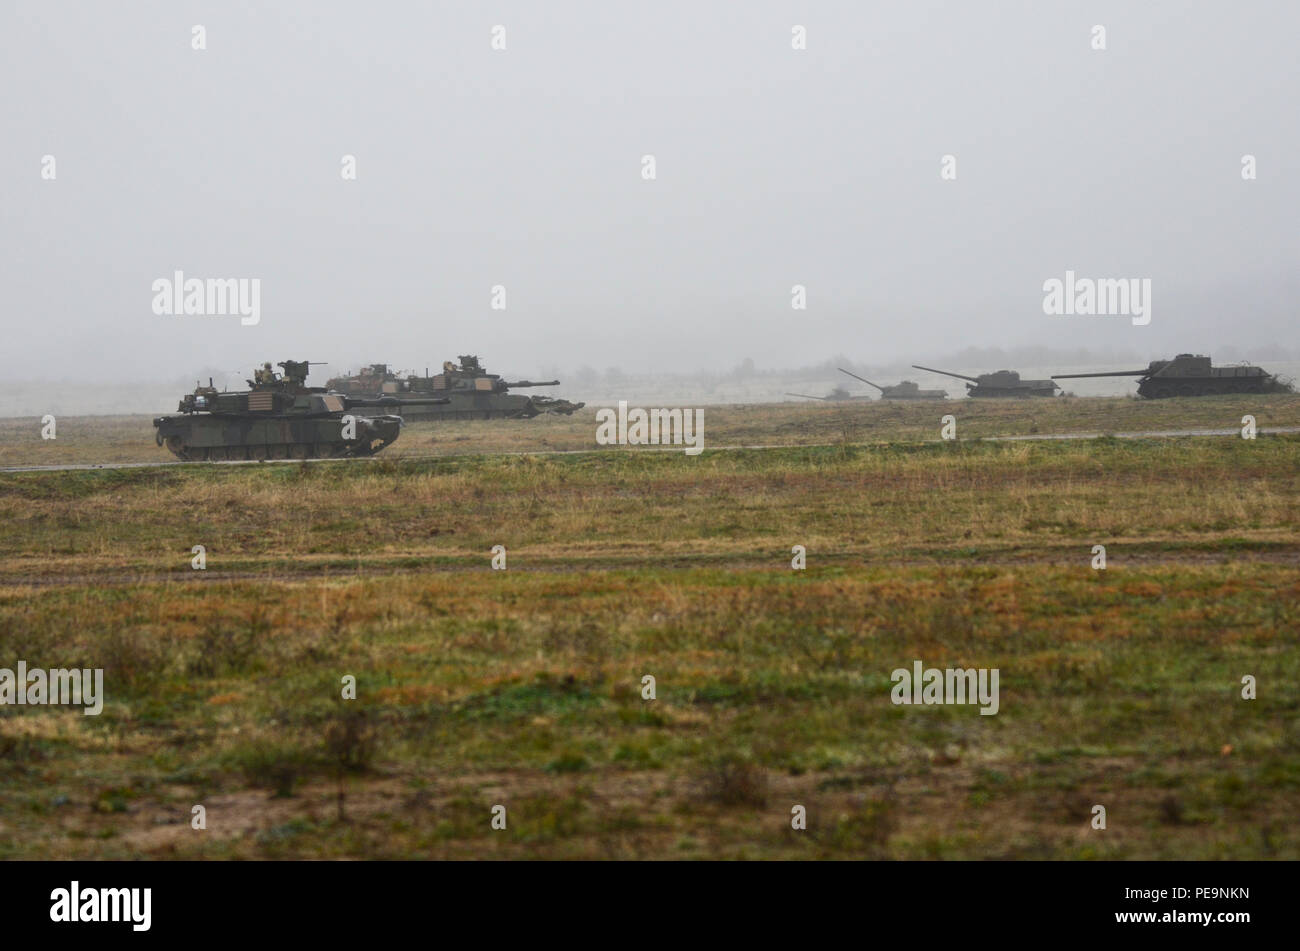 Through the fog and the rain, U.S. Soldiers of 5th Squadron, 7th Cavalry Regiment, 3rd Infantry Division, stationed at Fort Stewart, Ga., drive M1A2 System Enhancement Package Version 2 Abrams tanks toward the enemy during Exercise Peace Sentinel at Novo Selo Training Center, Bulgaria, Nov. 24, 2015. Peace Sentinel is a joint exercise that focuses on interoperability between the Bulgarian and U.S. forces. The old tanks to the right are used as decoys and range targets. (U.S. Army photo by Staff Sgt. Steven M. Colvin/Released) - Stock Image